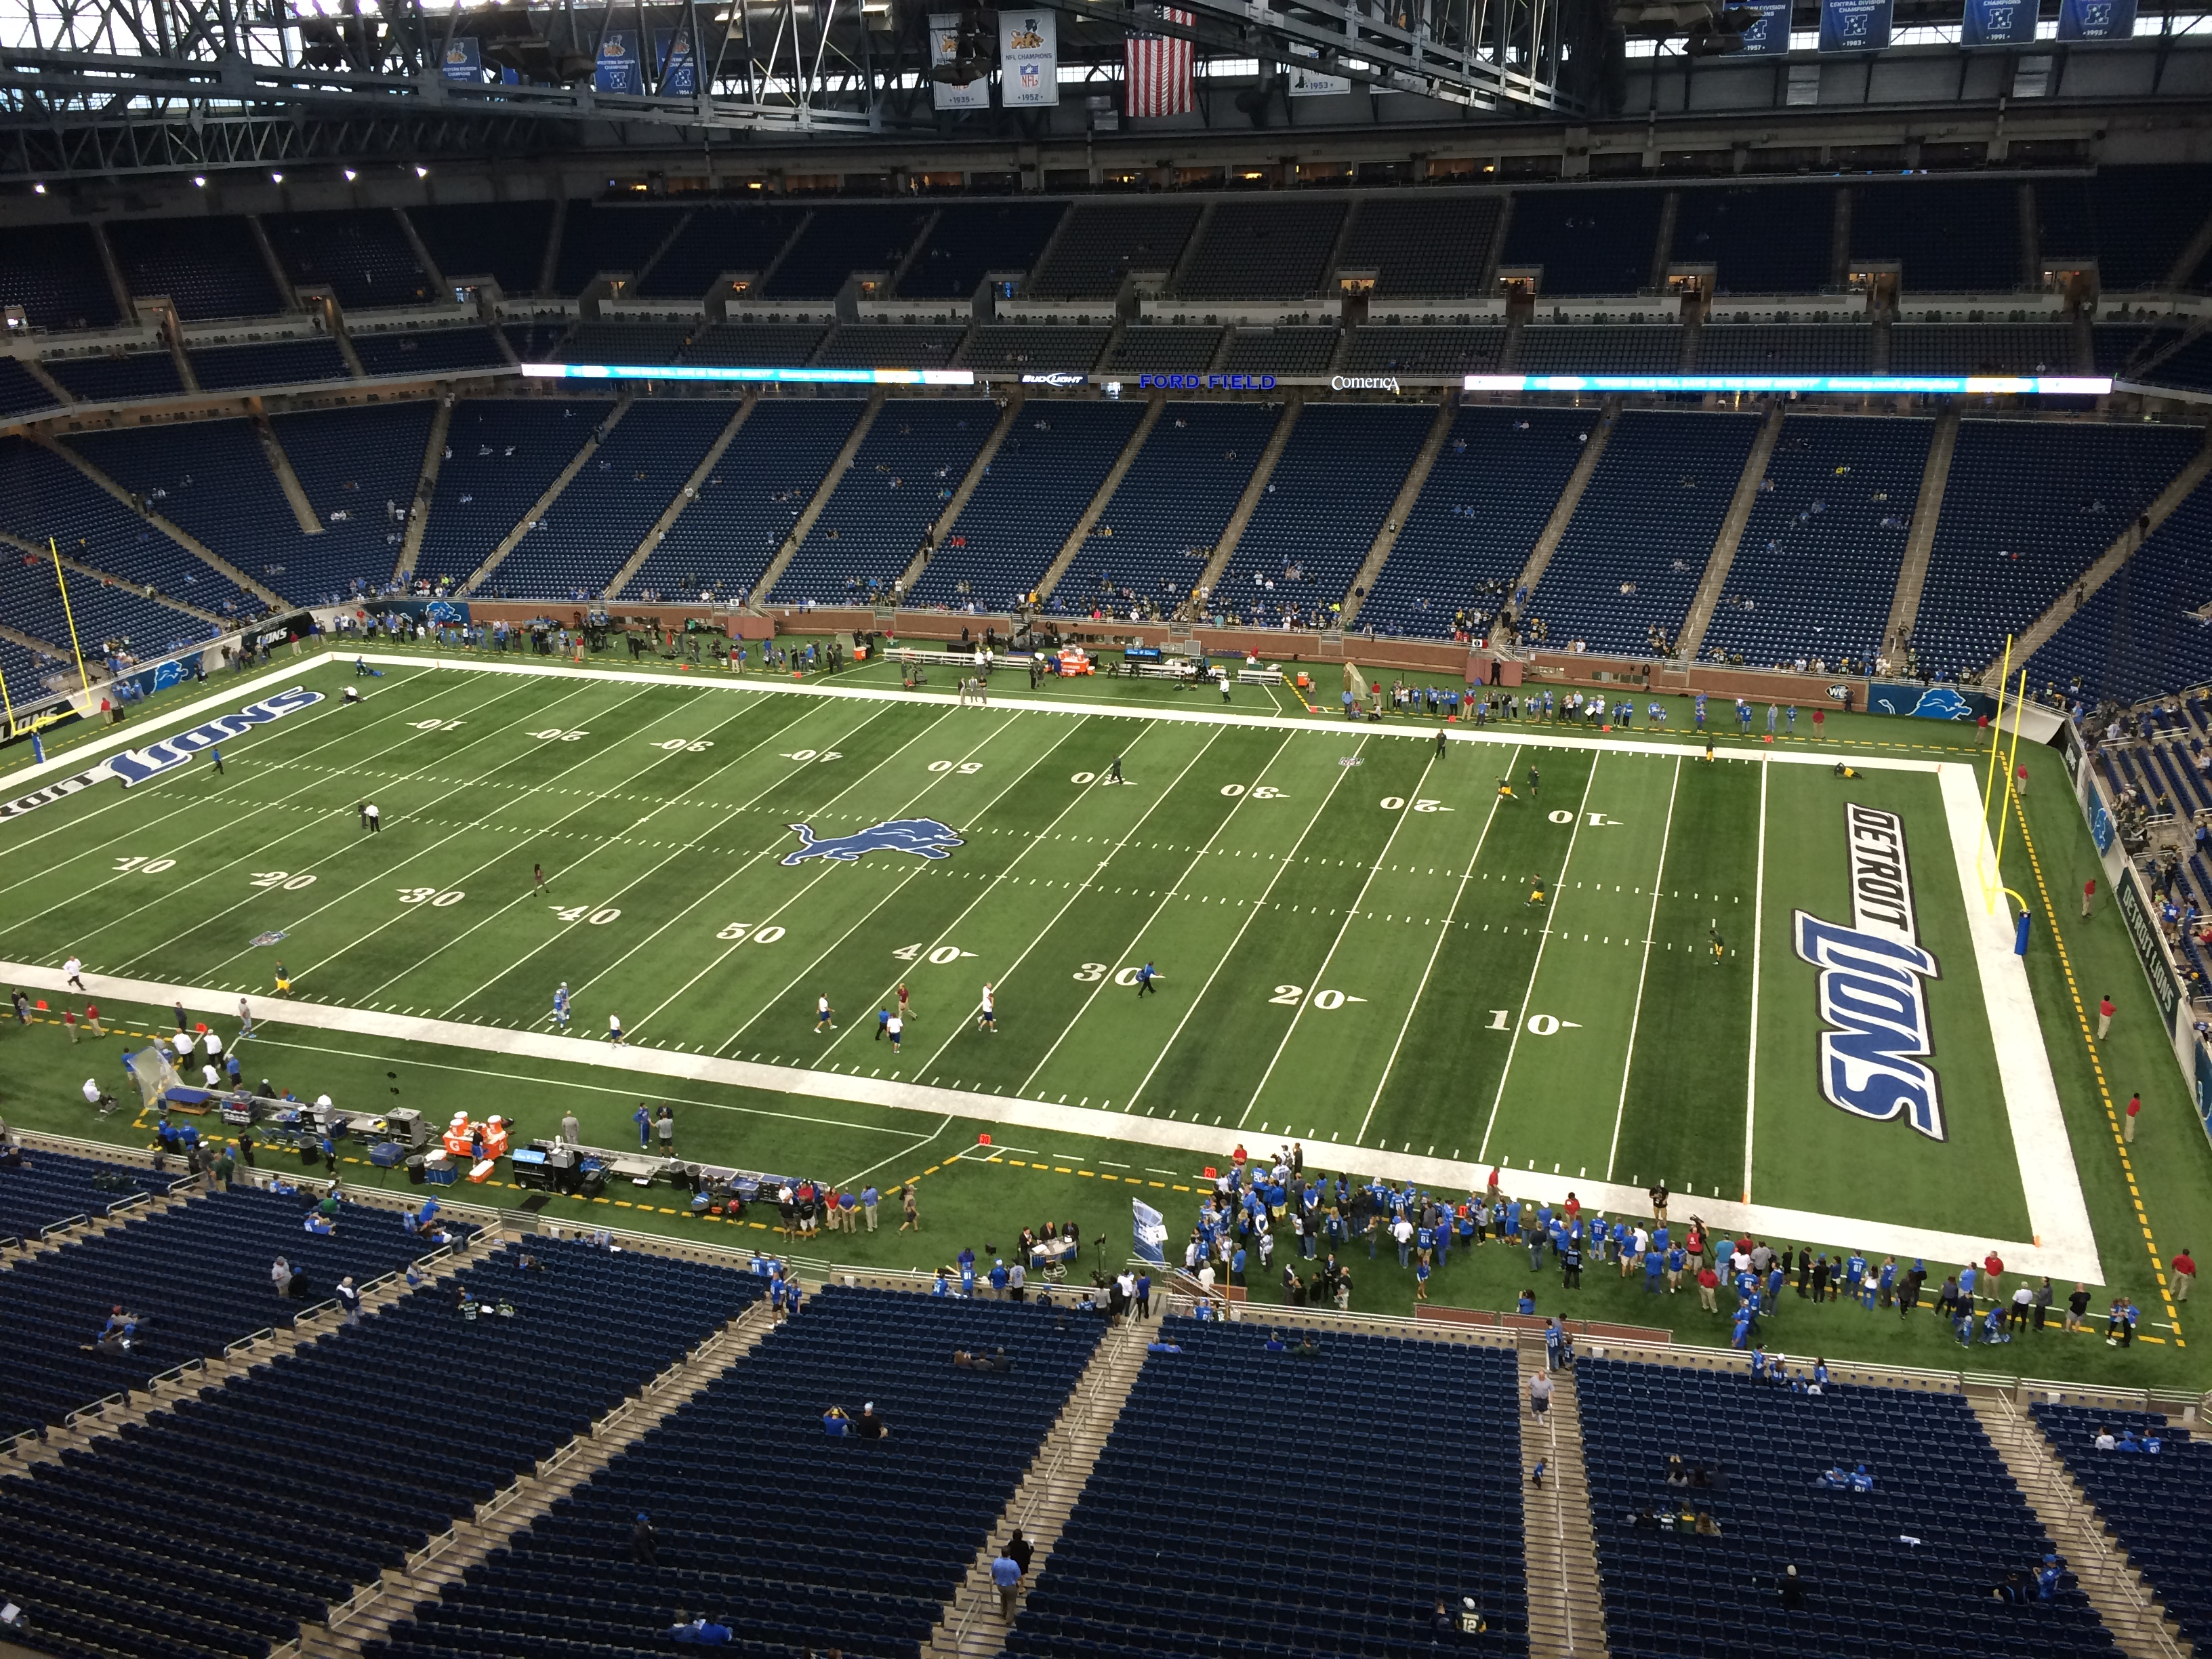 Seat view from section 210 at Ford Field, home of the Detroit Lions